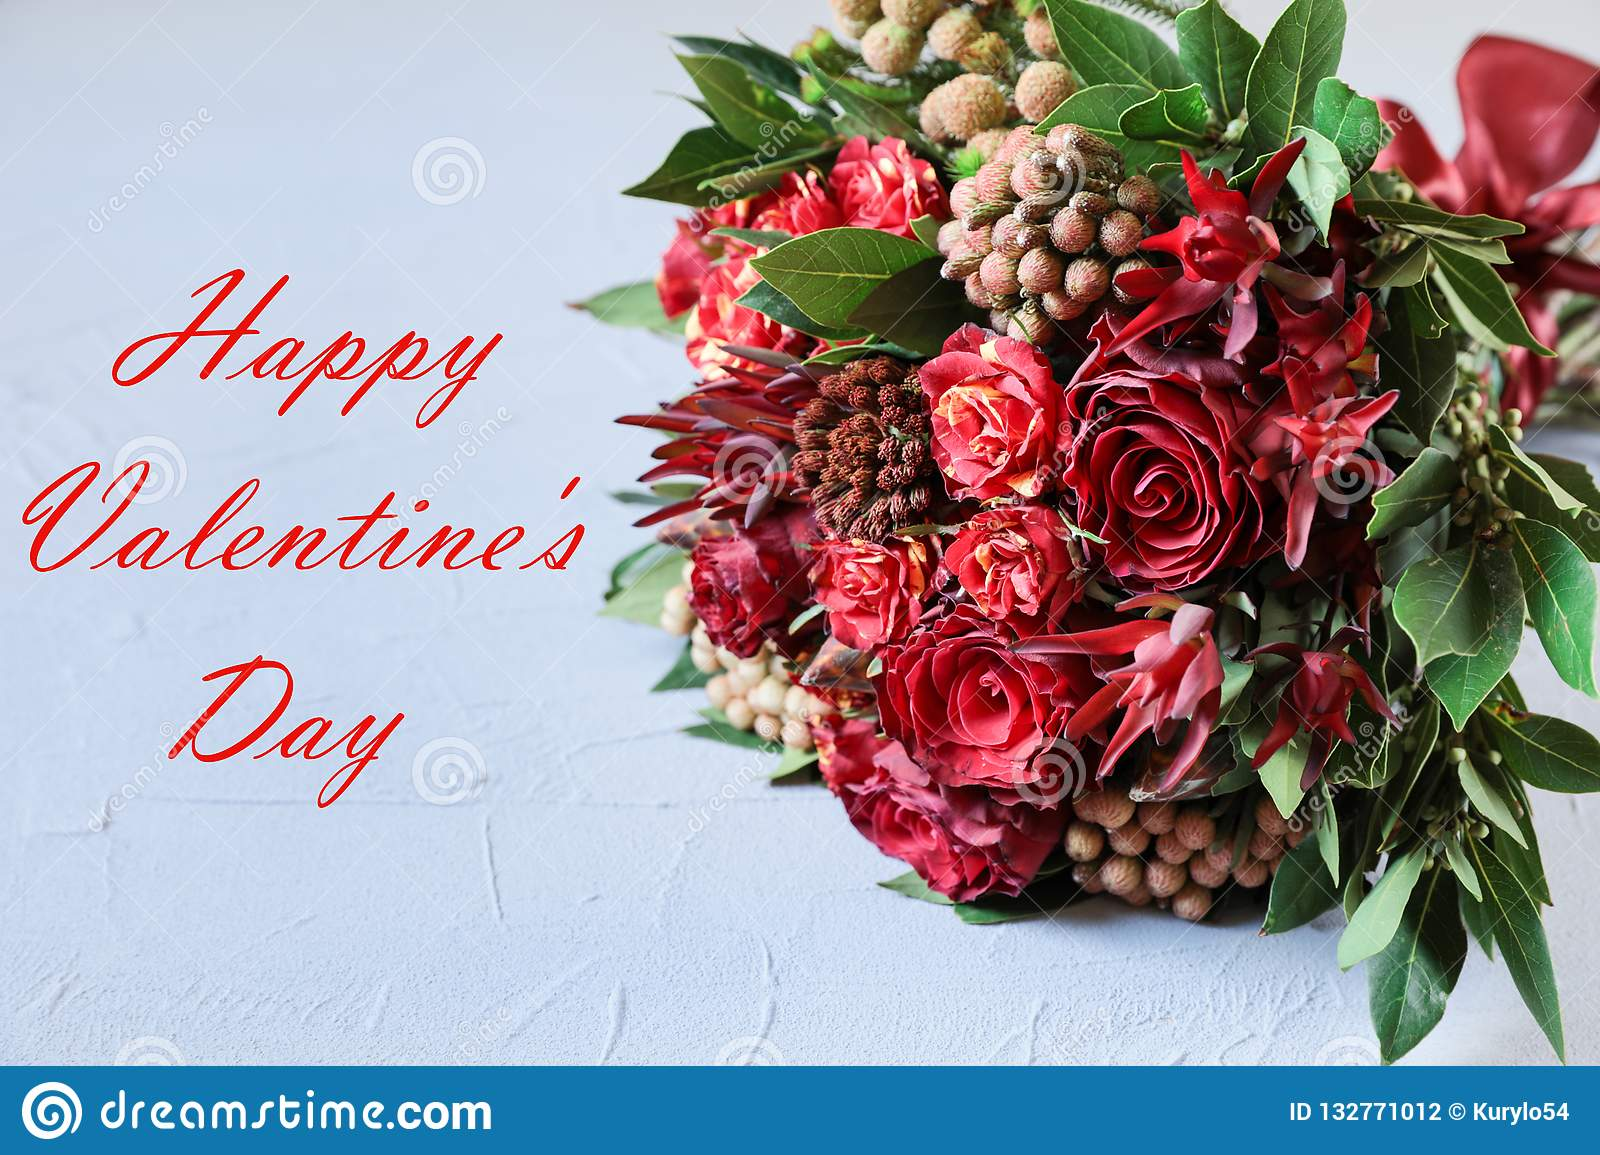 Beautiful fresh flower arrangement of red roses and text wish, Valentines day greeting card concept.